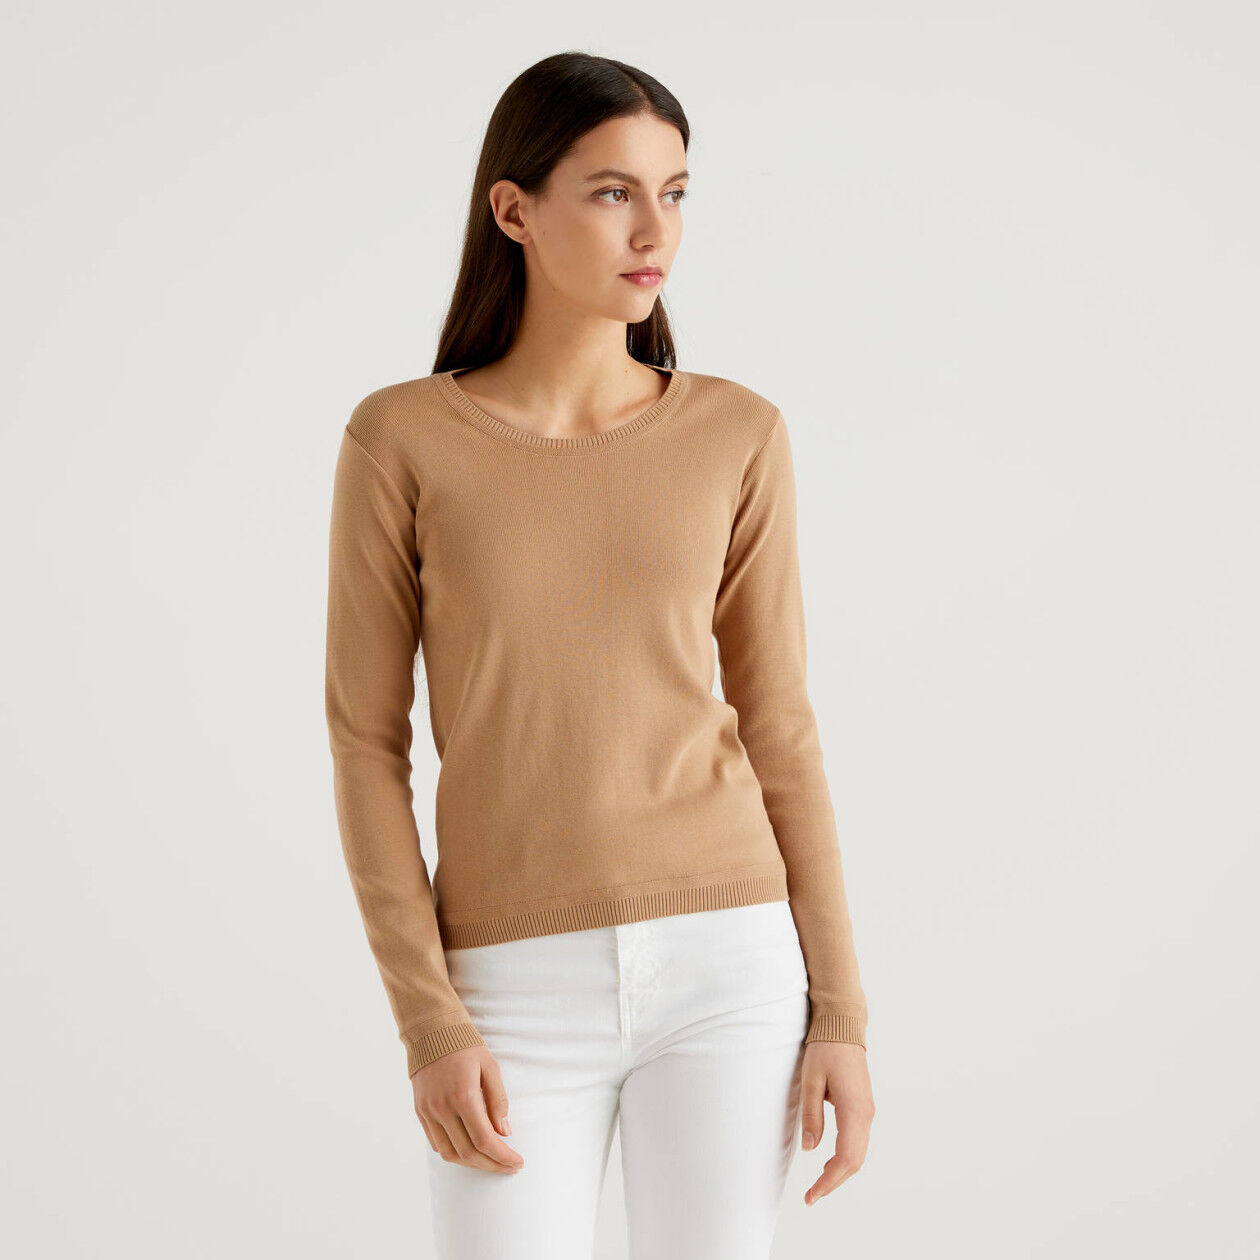 Crew neck sweater in pure cotton